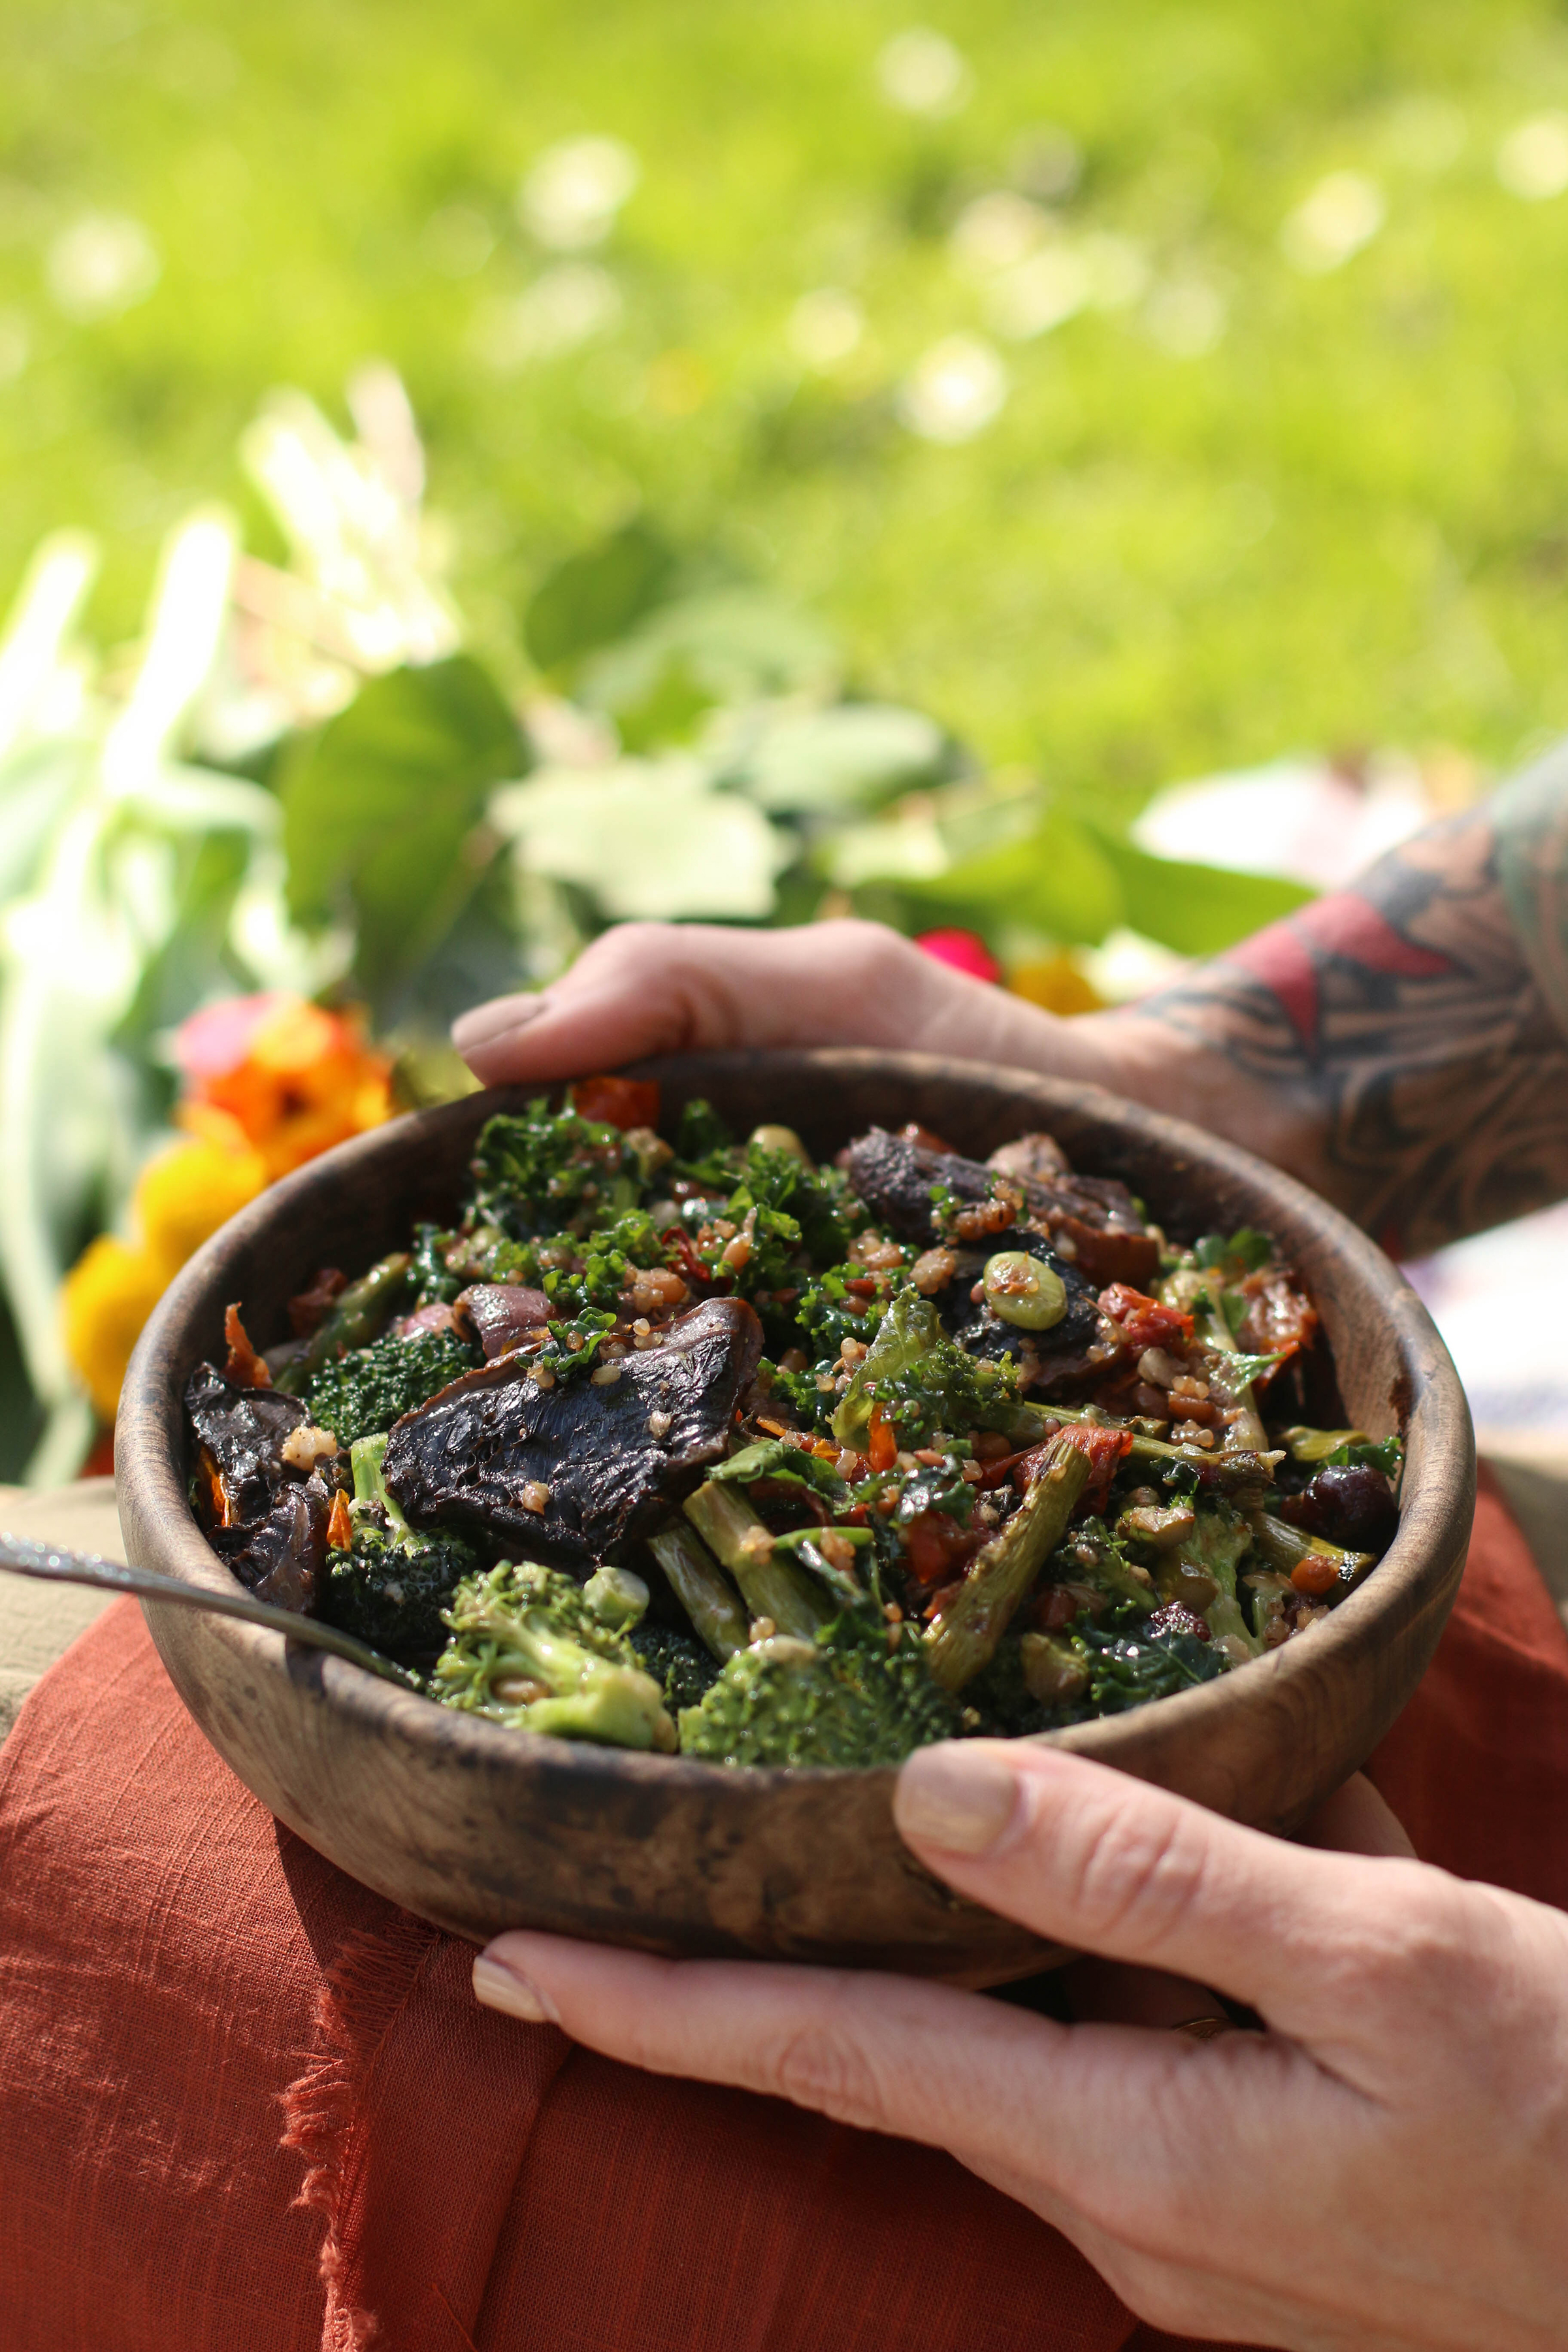 hands-holding-wooden-bowl-of-fresh-spring-greens-and-mushrooms-sitting-outdoors